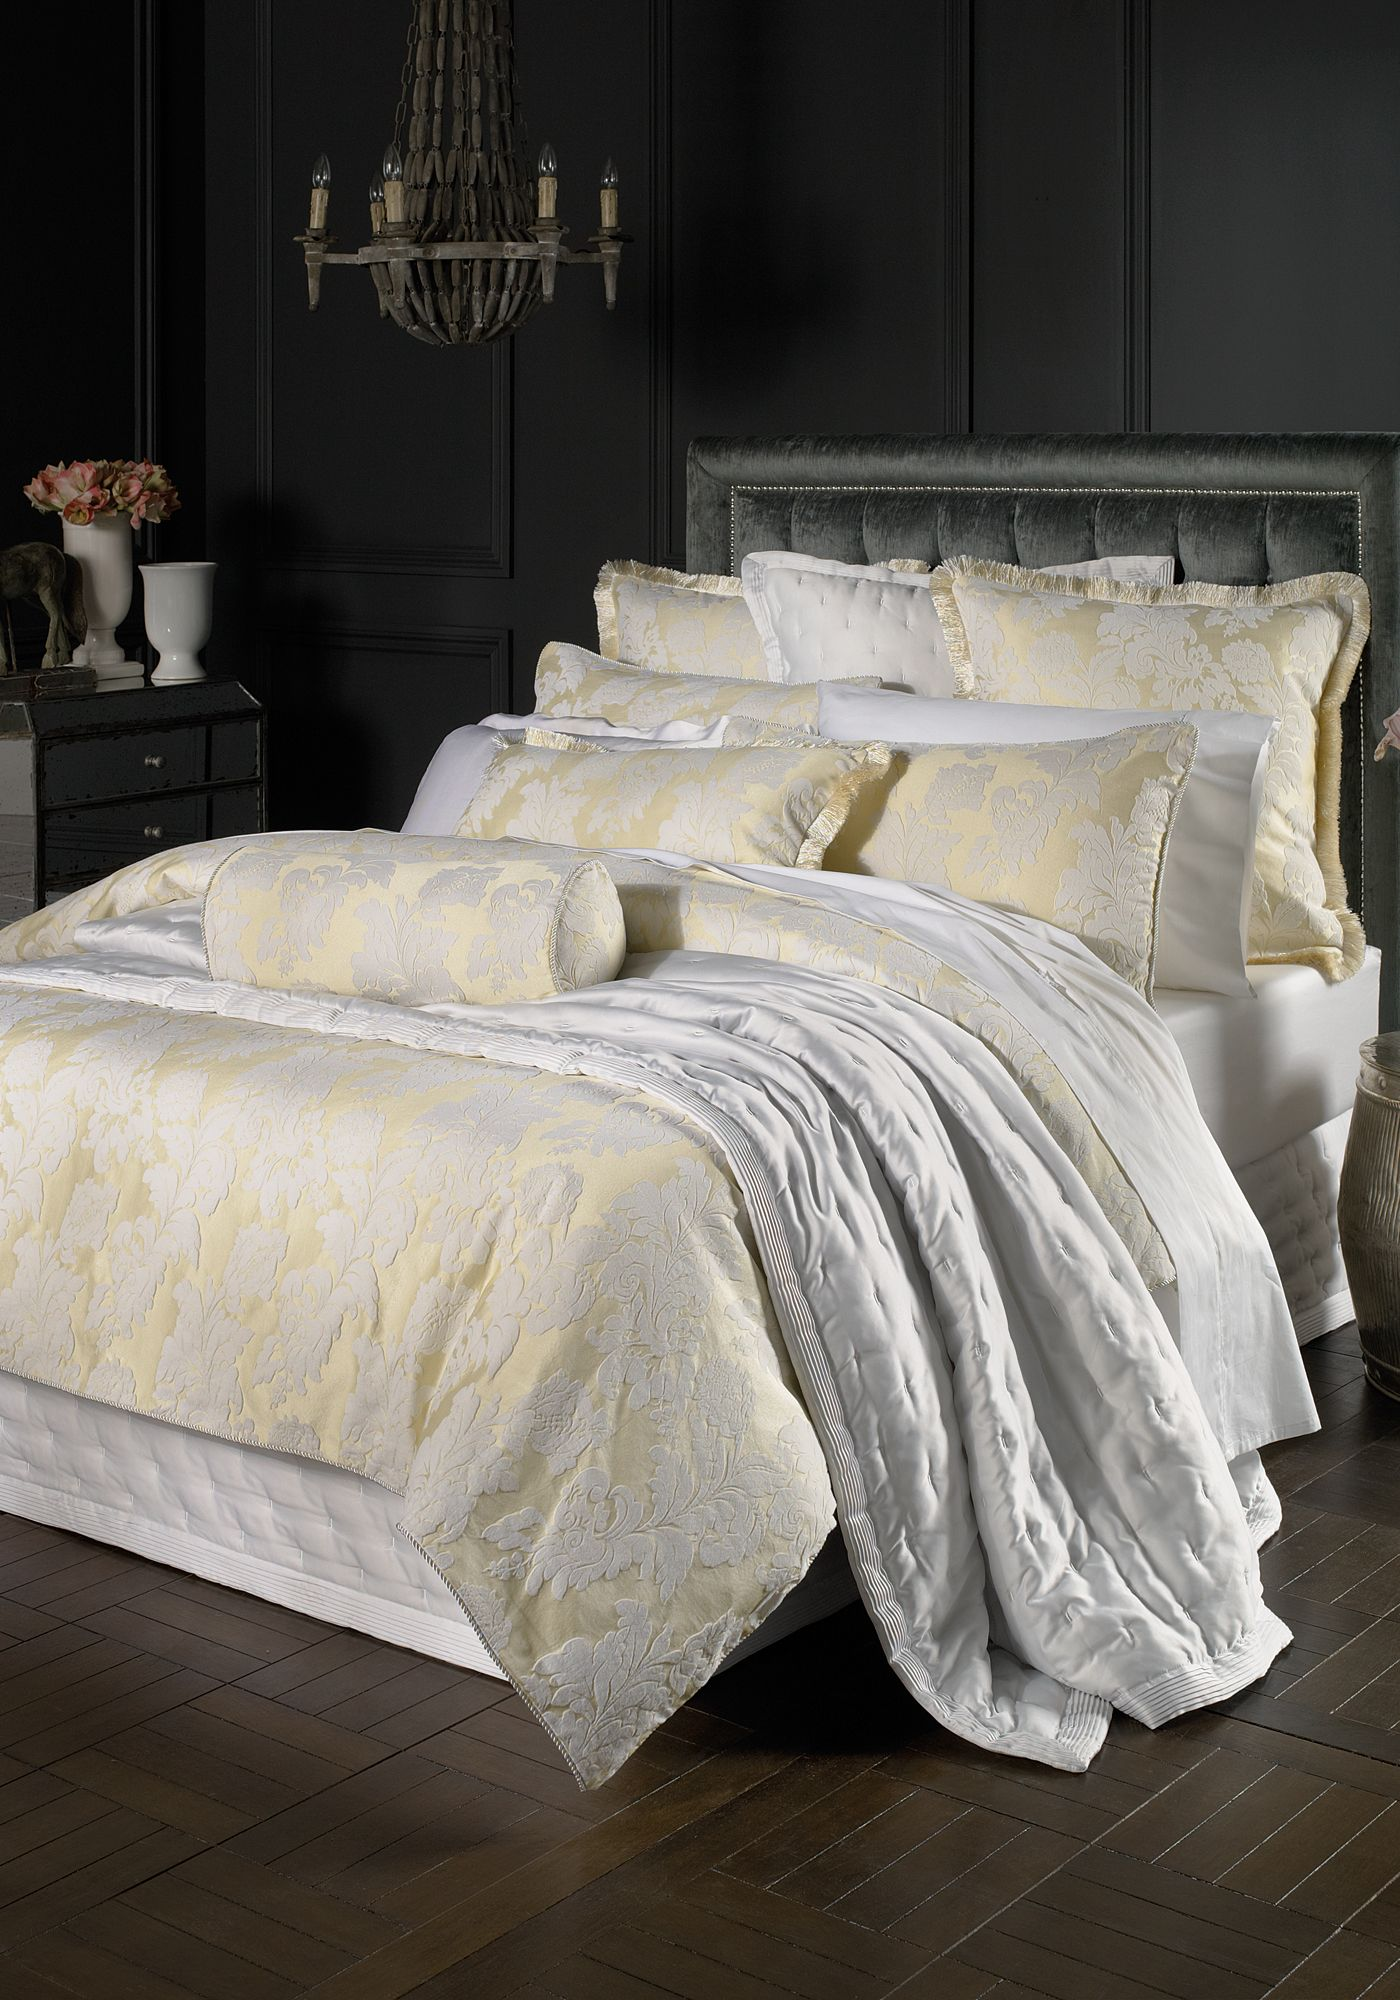 Chios bed linen in cream spring